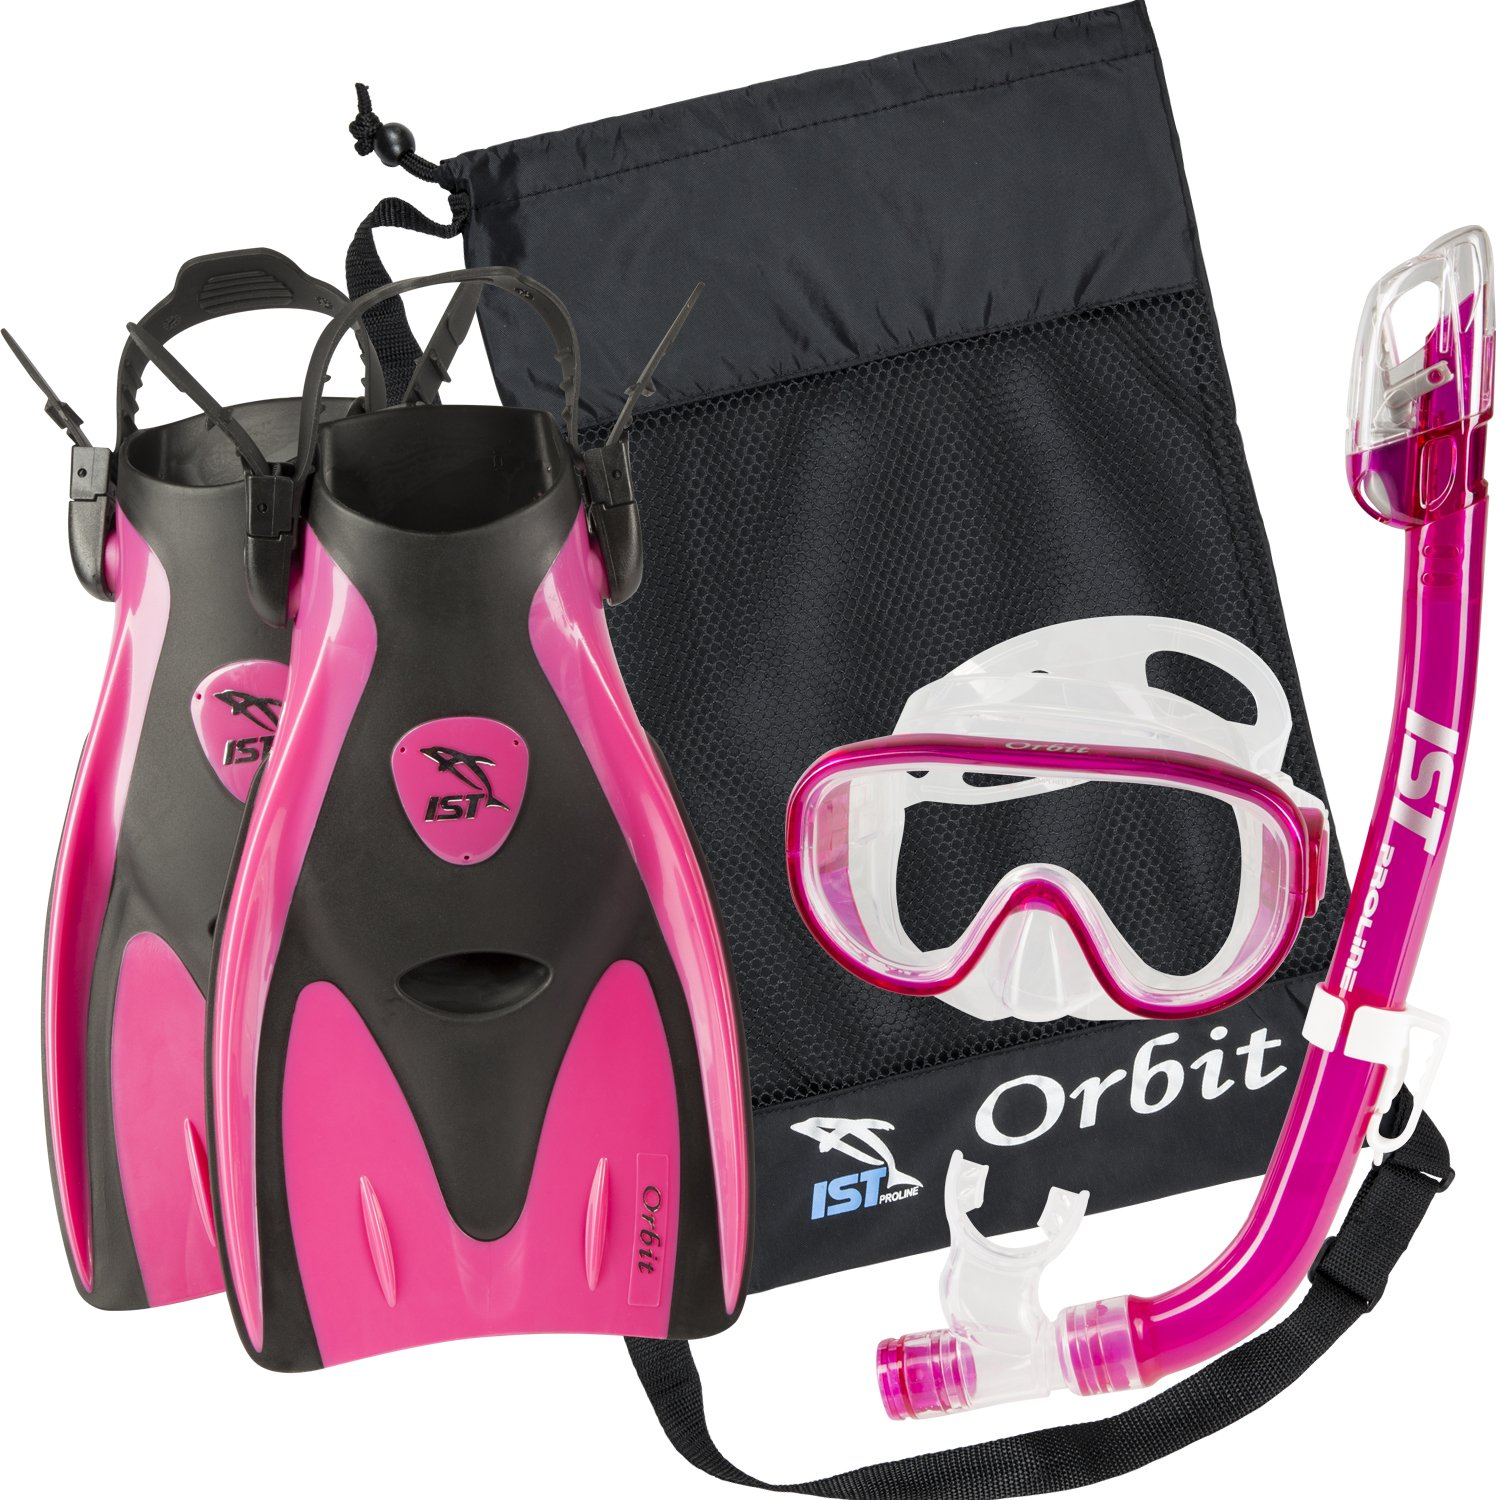 IST Orbit Snorkel Set (Pink, Small (2-5))